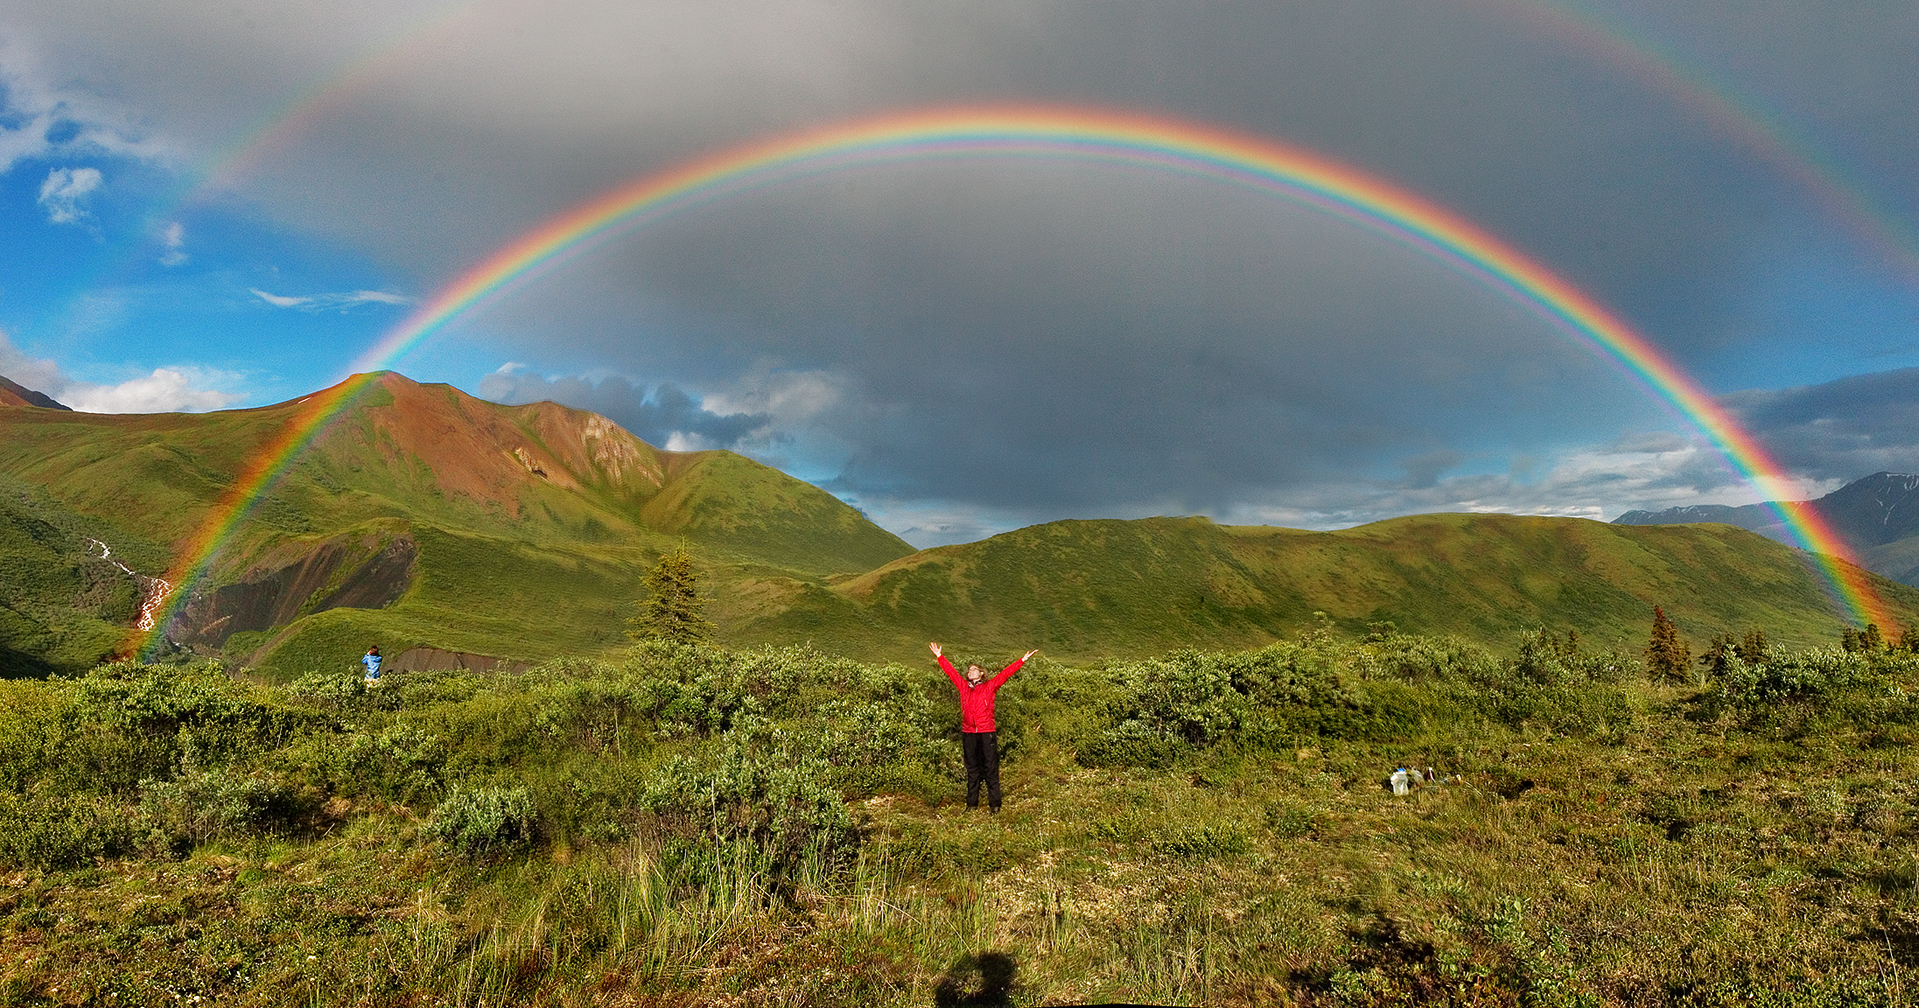 http://upload.wikimedia.org/wikipedia/commons/5/5c/Double-alaskan-rainbow.jpg